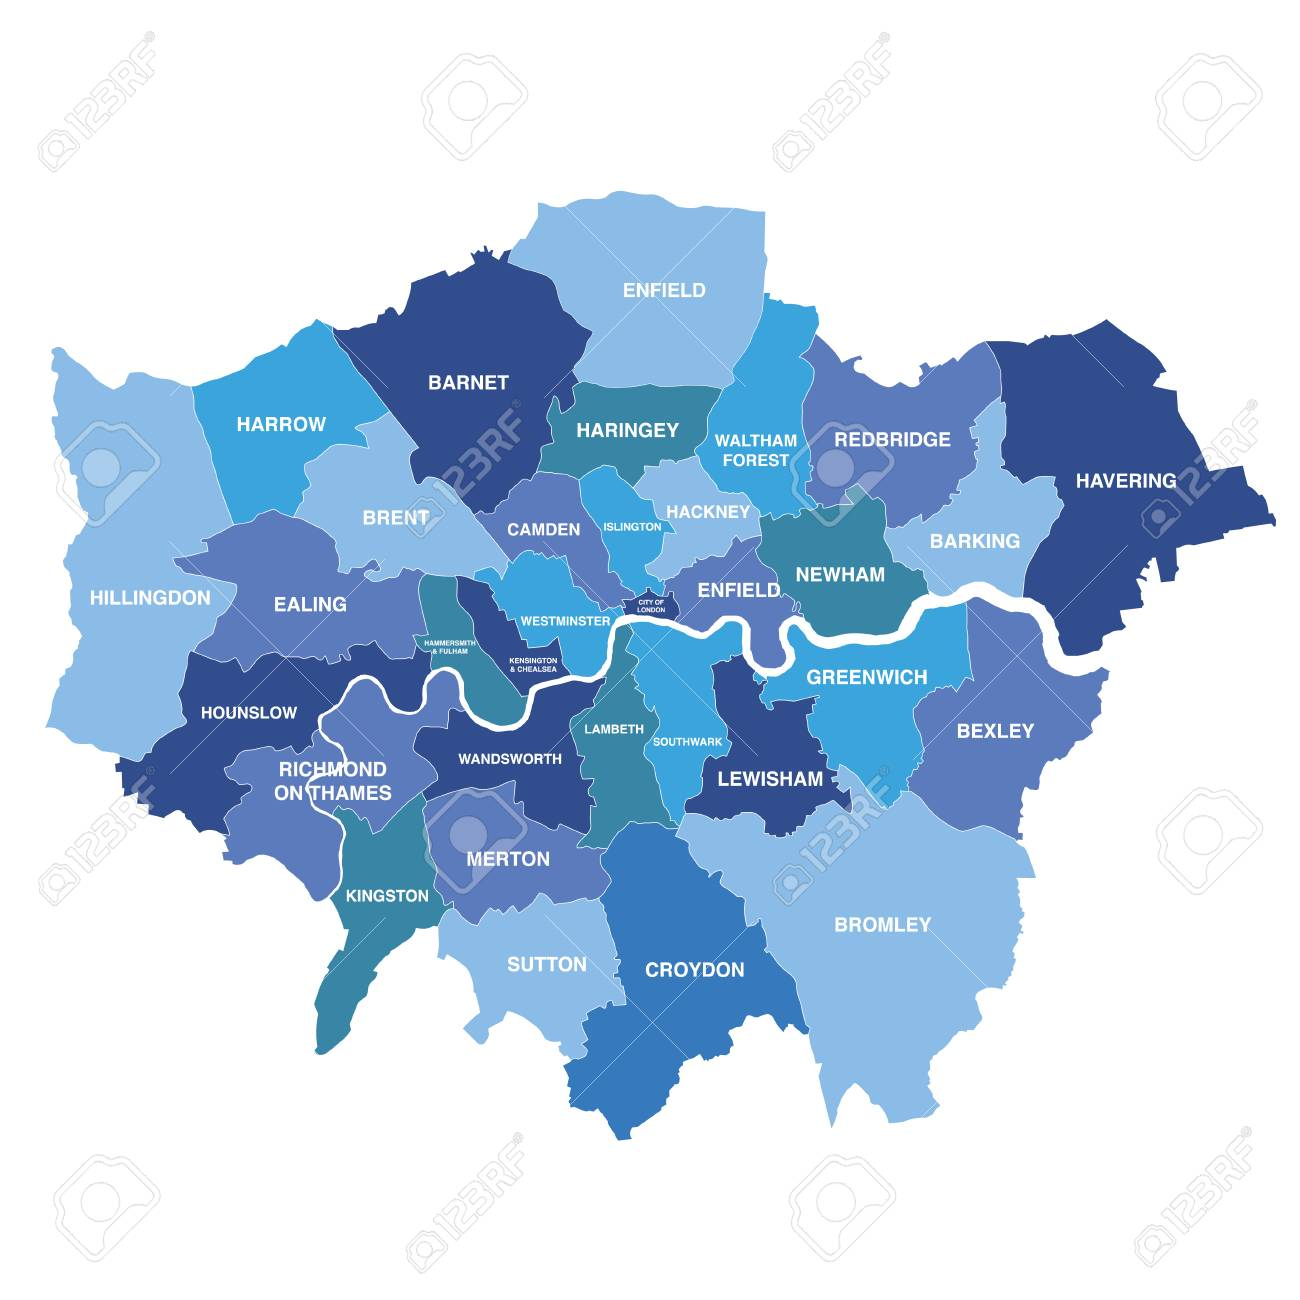 Map Of London Showing Boroughs.Greater London Map Showing All Boroughs